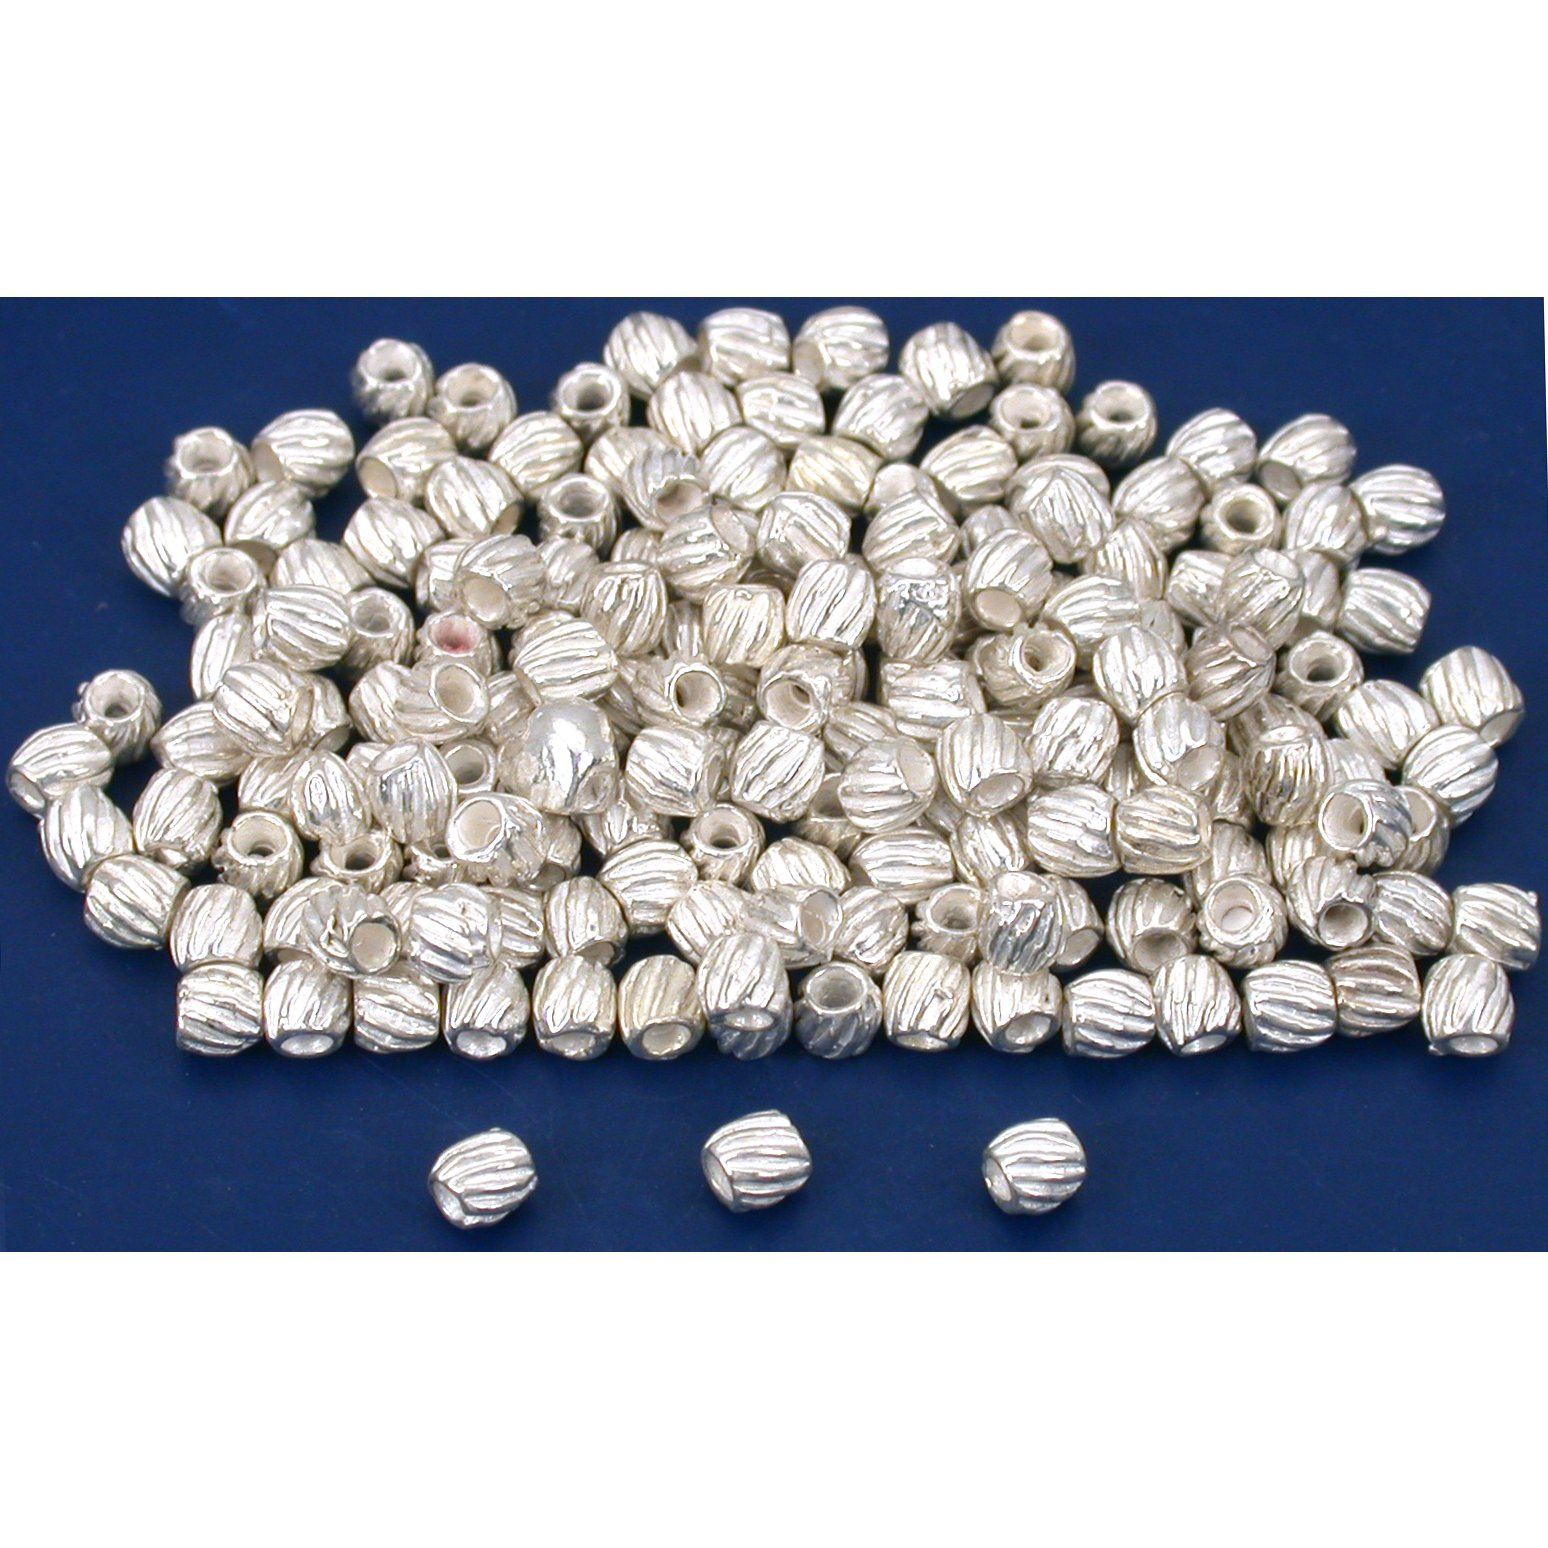 Bali Tube Beads Silver Plated 3mm 15 Grams